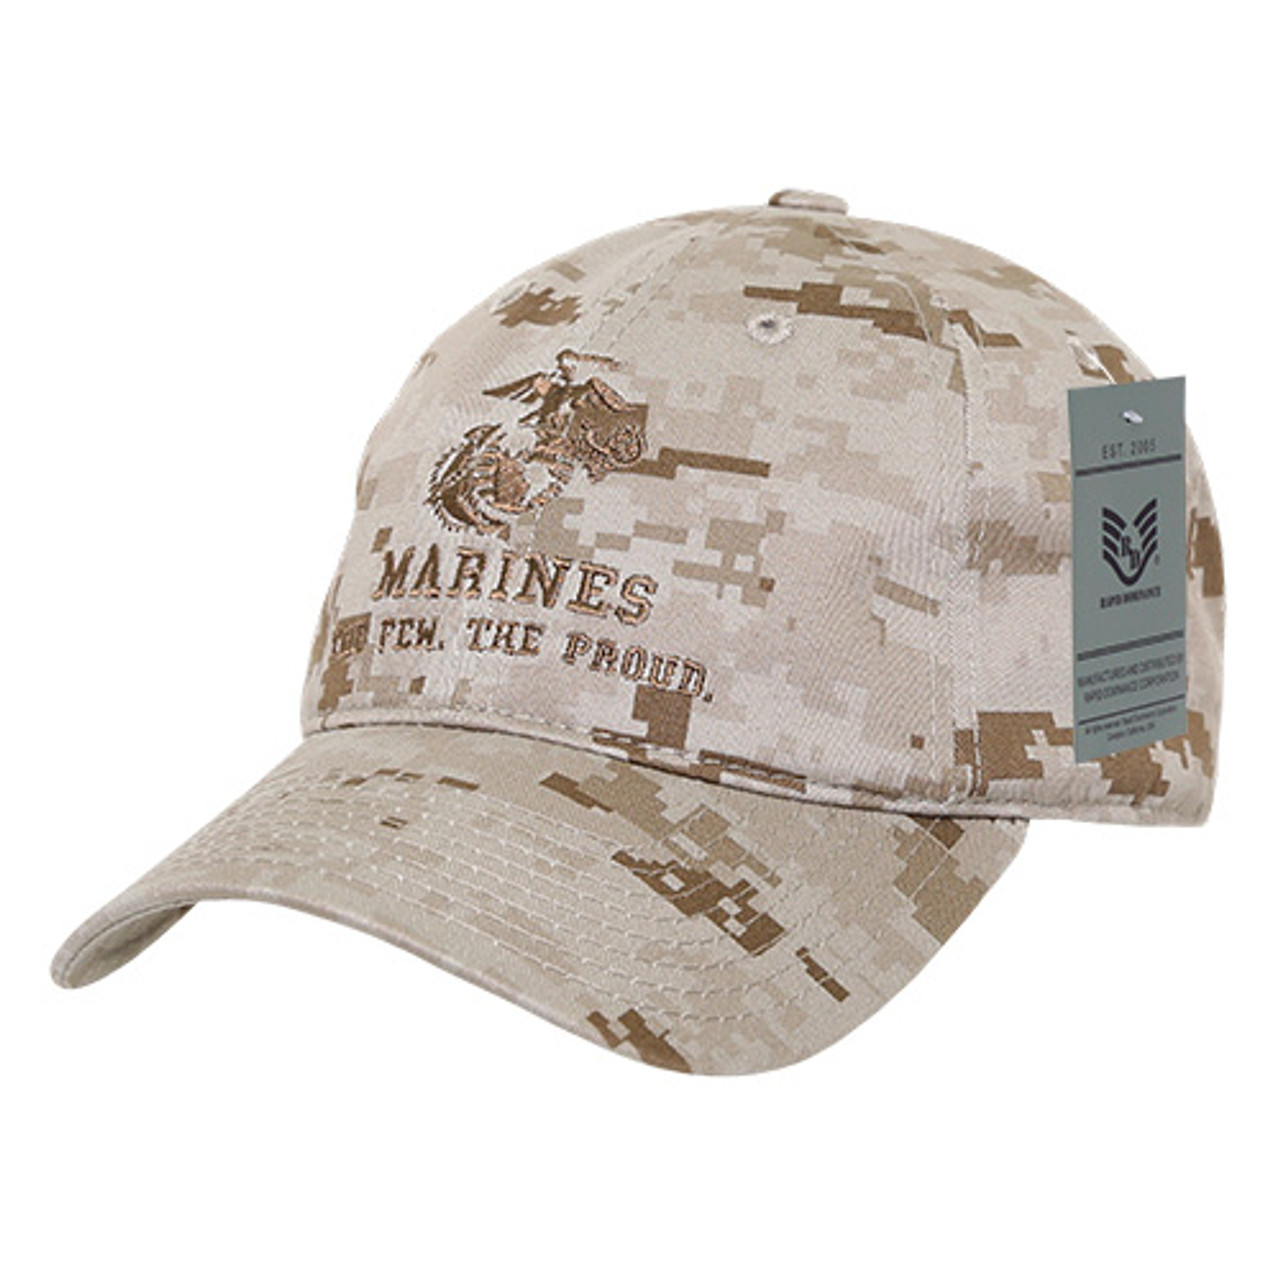 eae1b1822 USMC US Marine Corp The Few The Proud DDG Relaxed Fit Military Hat Baseball  Cap Hat